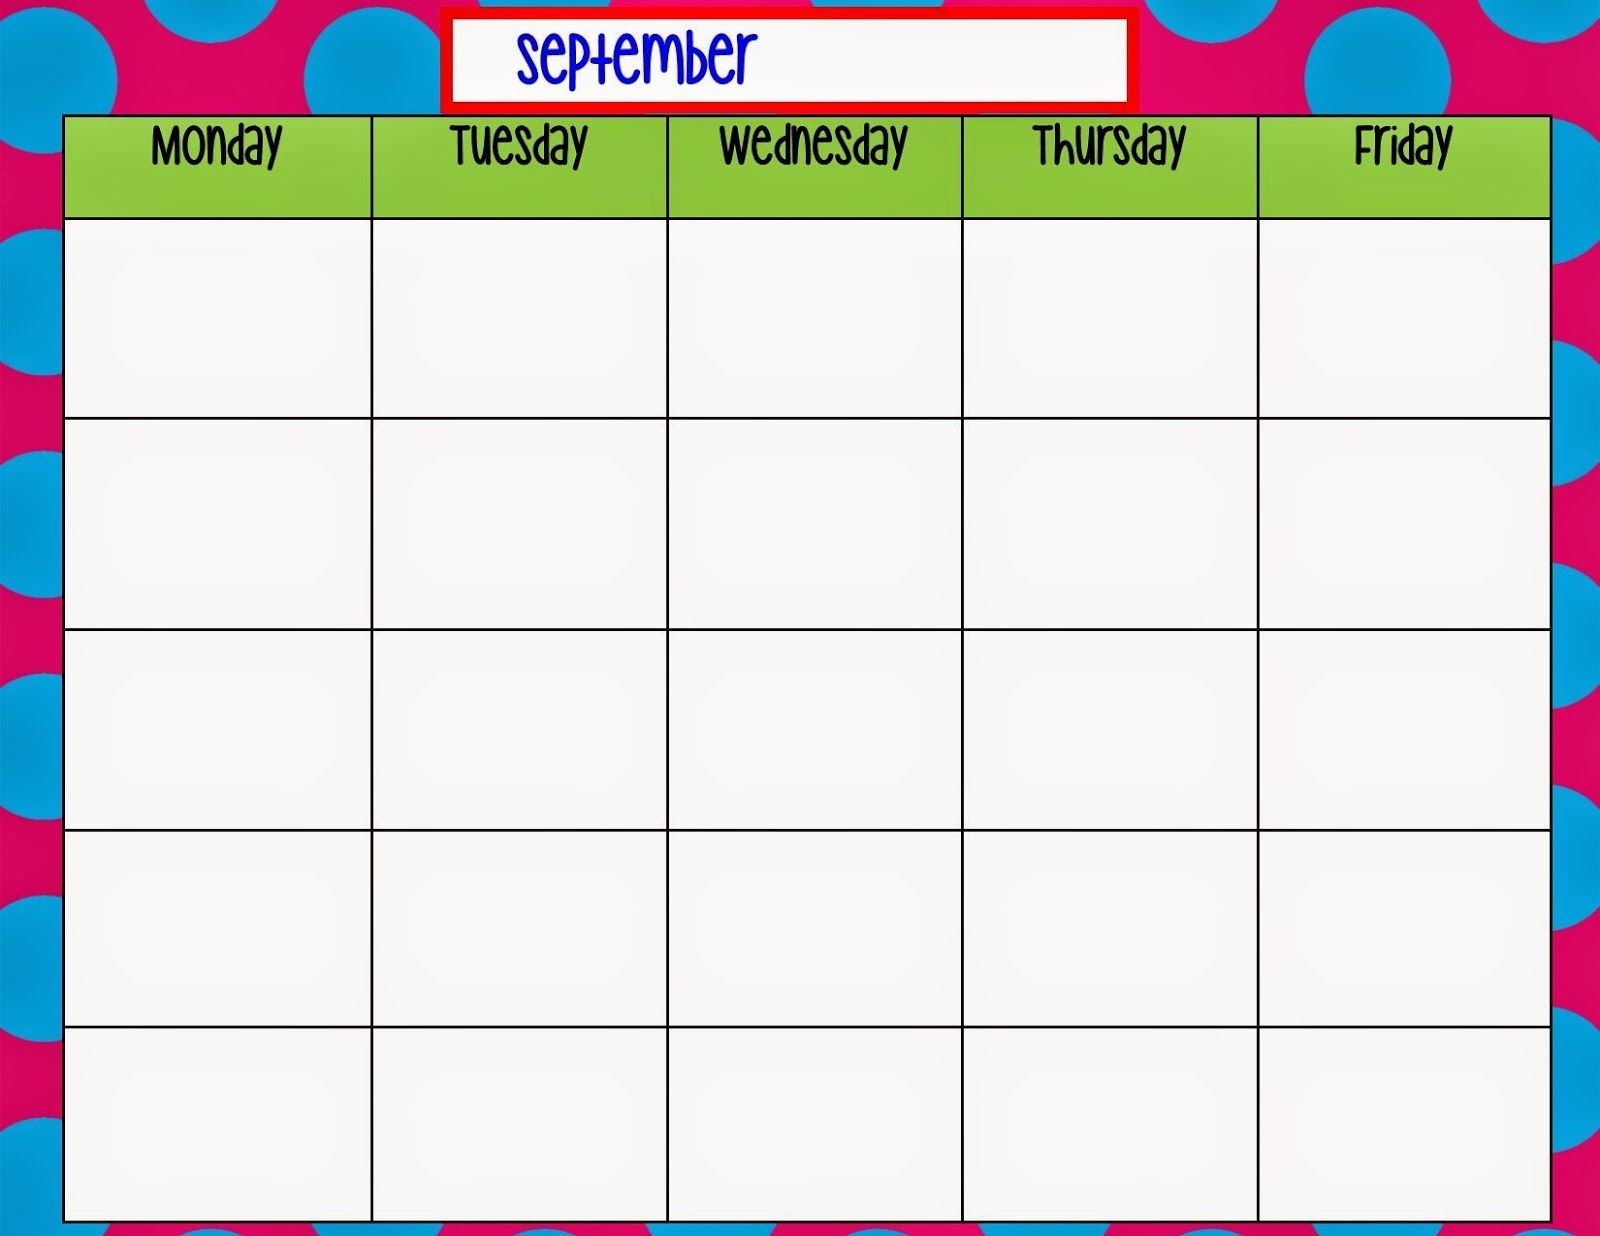 Monday Through Friday Calendar Template | Preschool | Printable inside Monday To Friday Weekly Planner